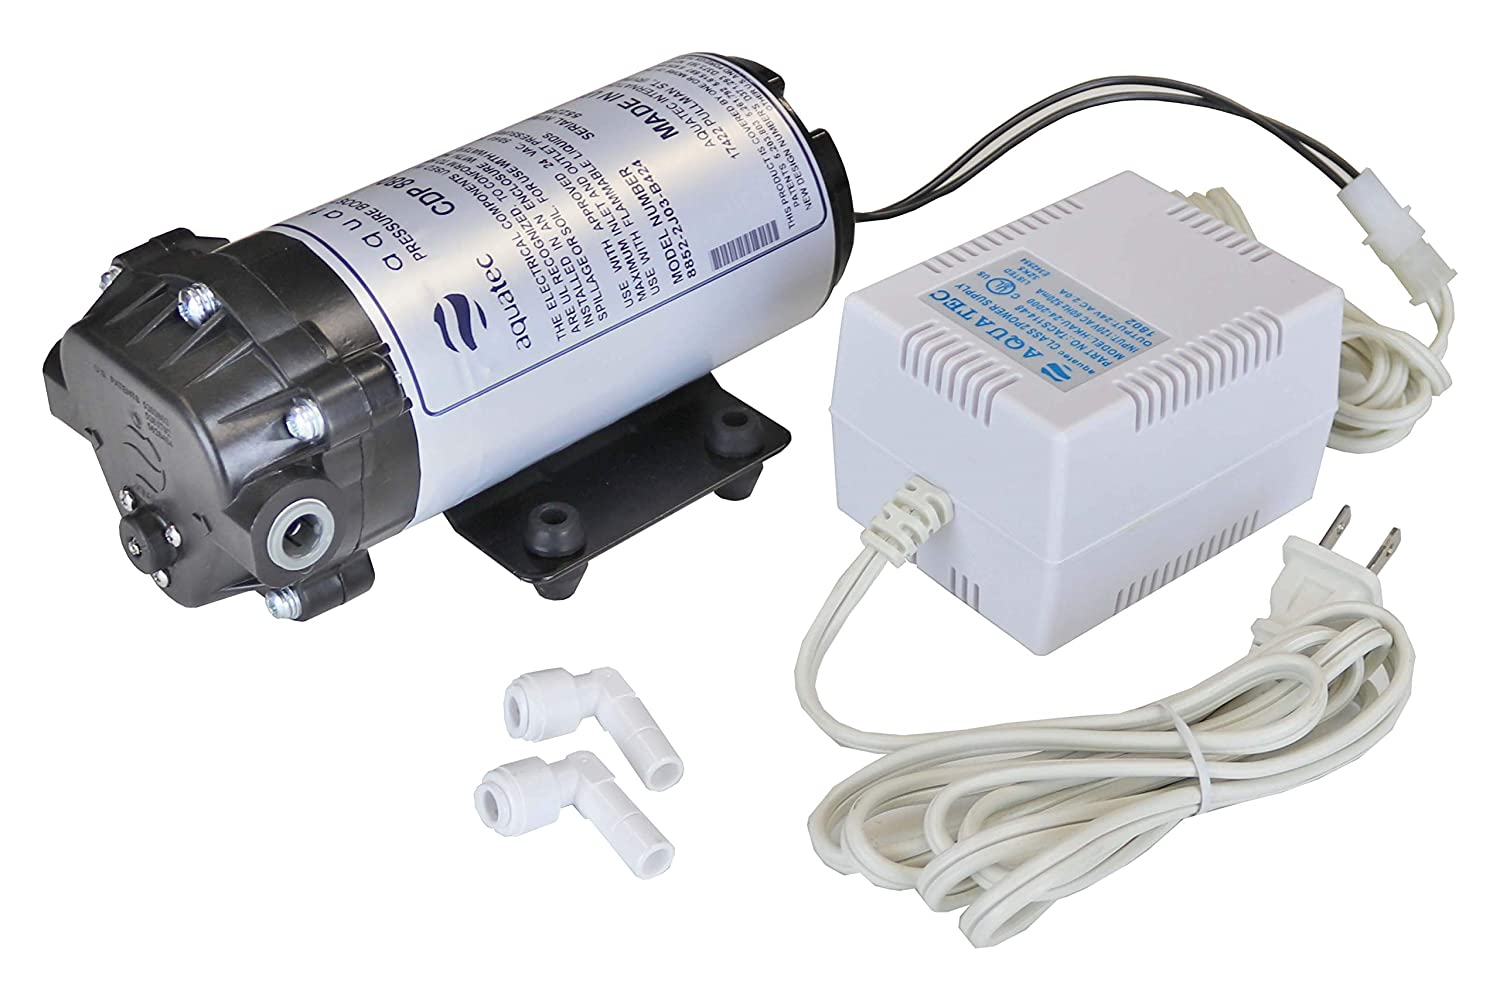 5% OFF Aquatec 8800 Booster Pump with black Transformer Inexpensive